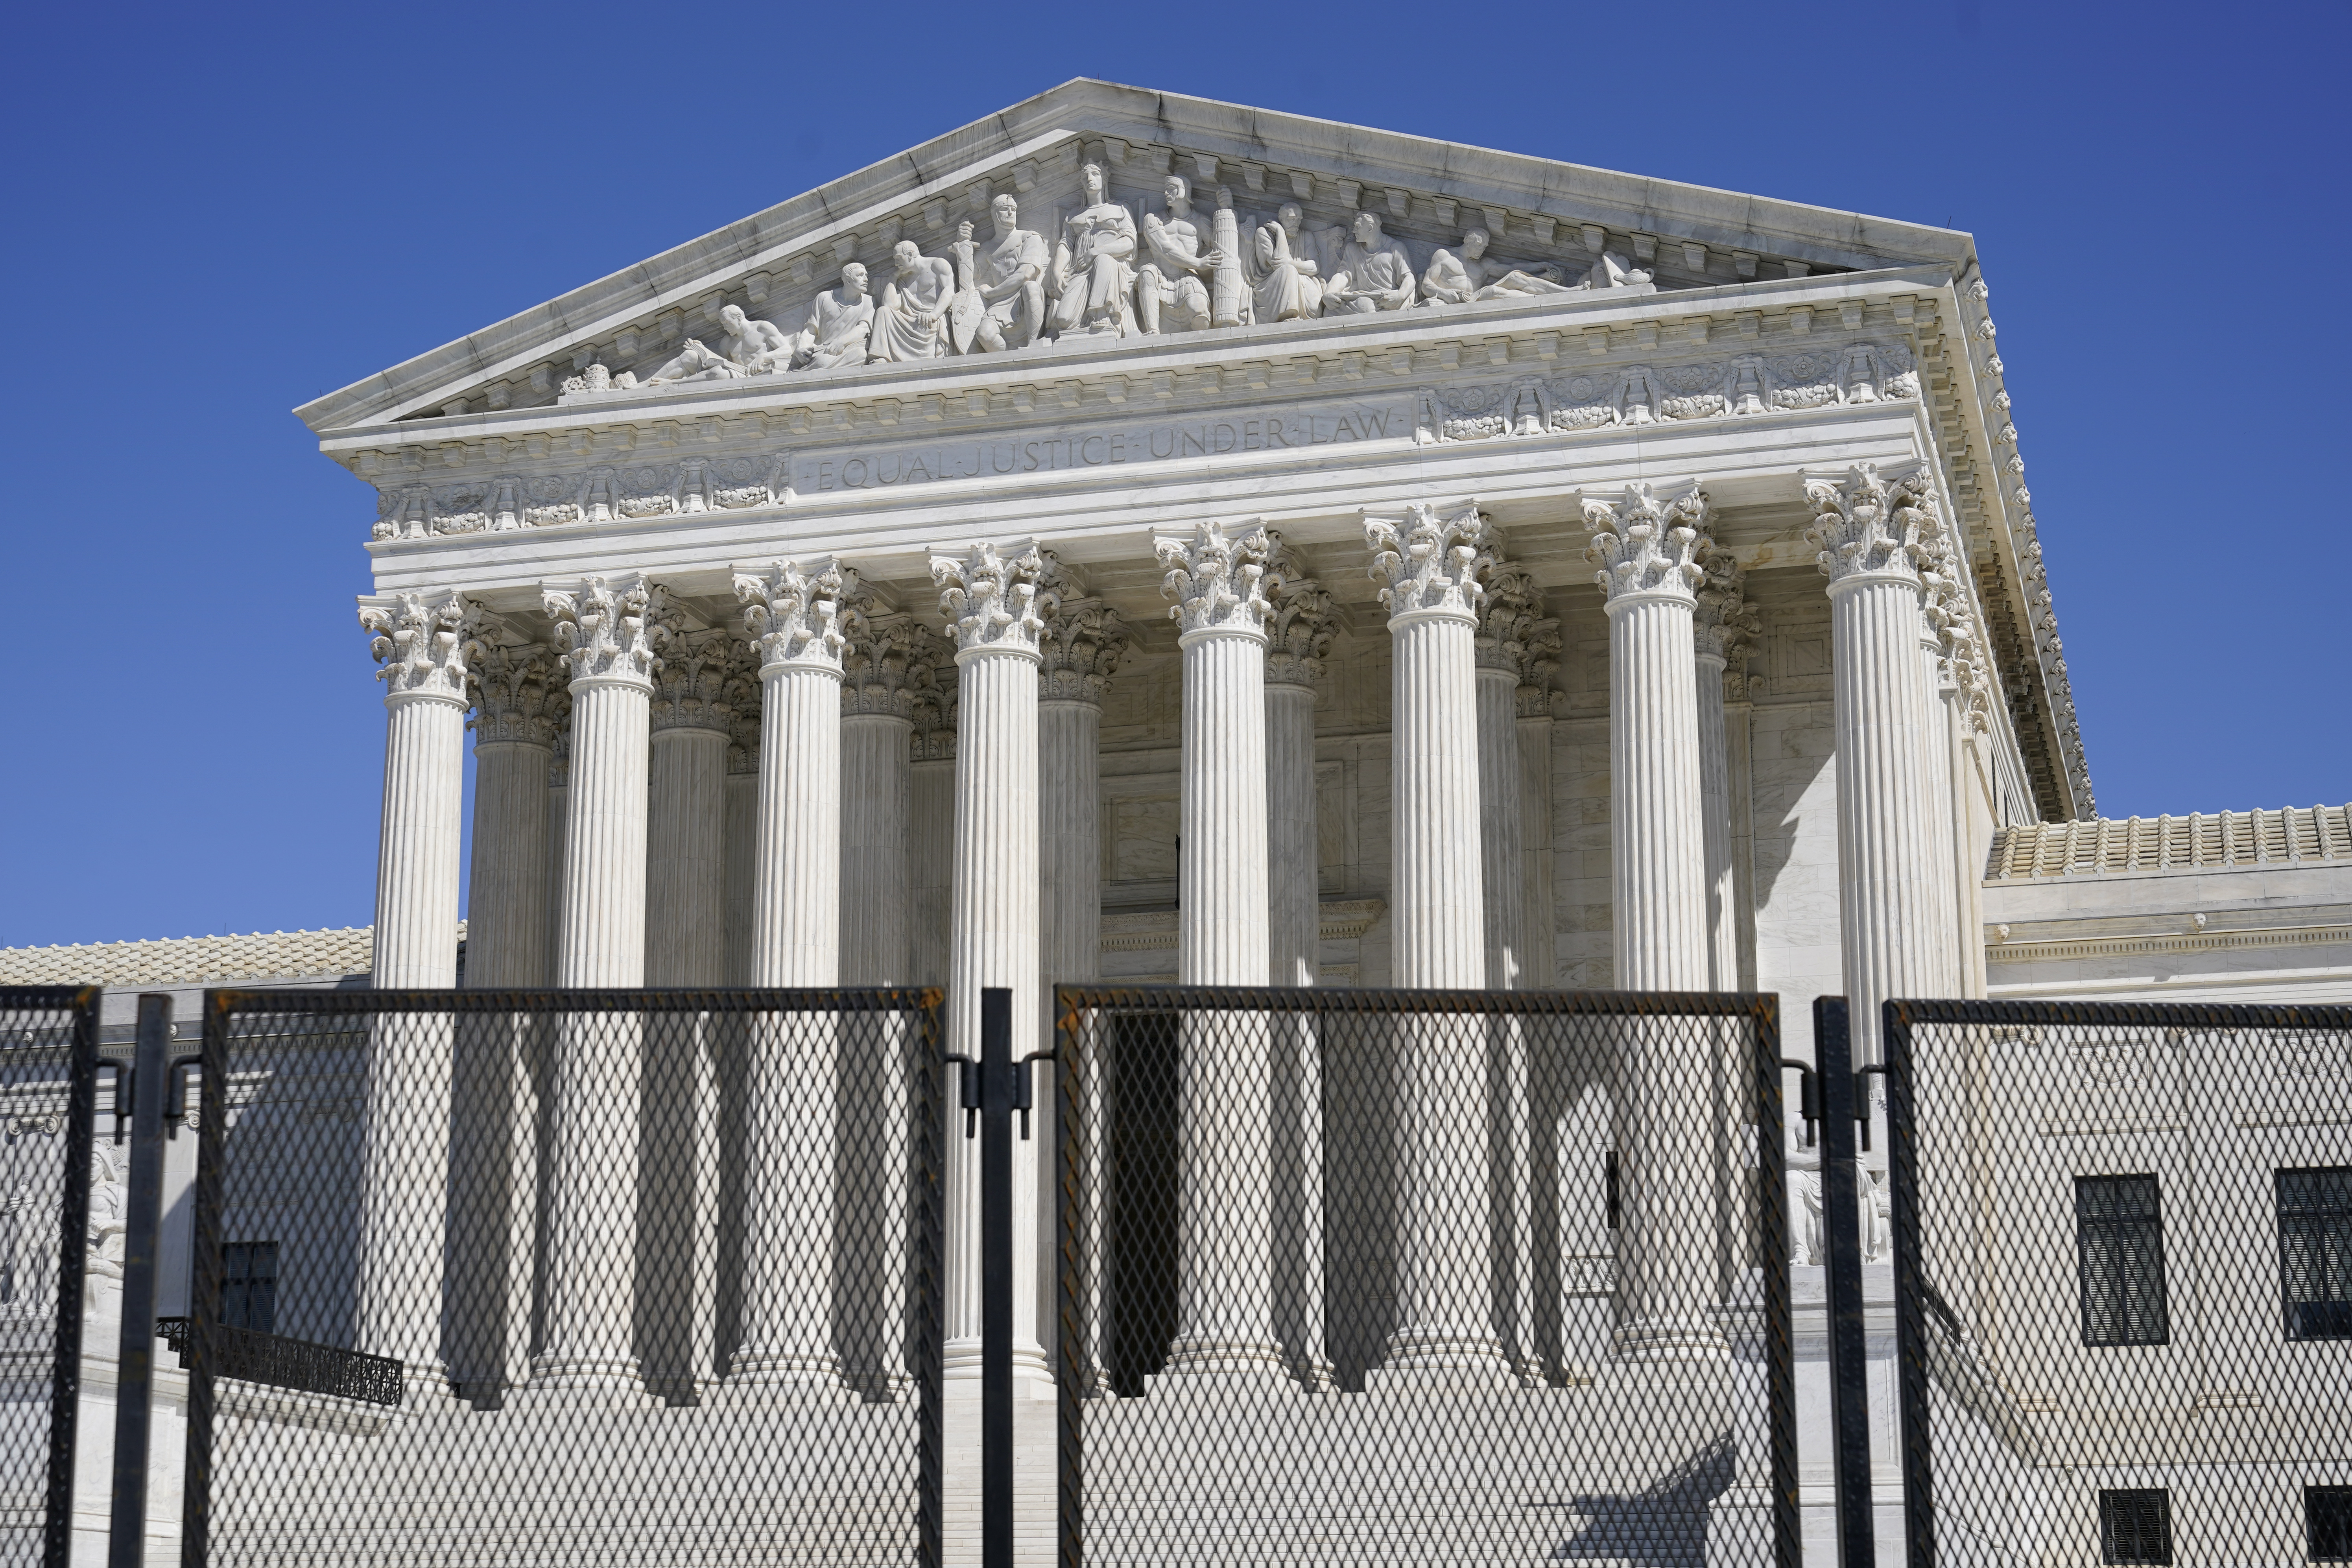 The Presidential Commission on the Supreme Court of the United States will have six months to study Supreme Court reform and submit a report to the White House.